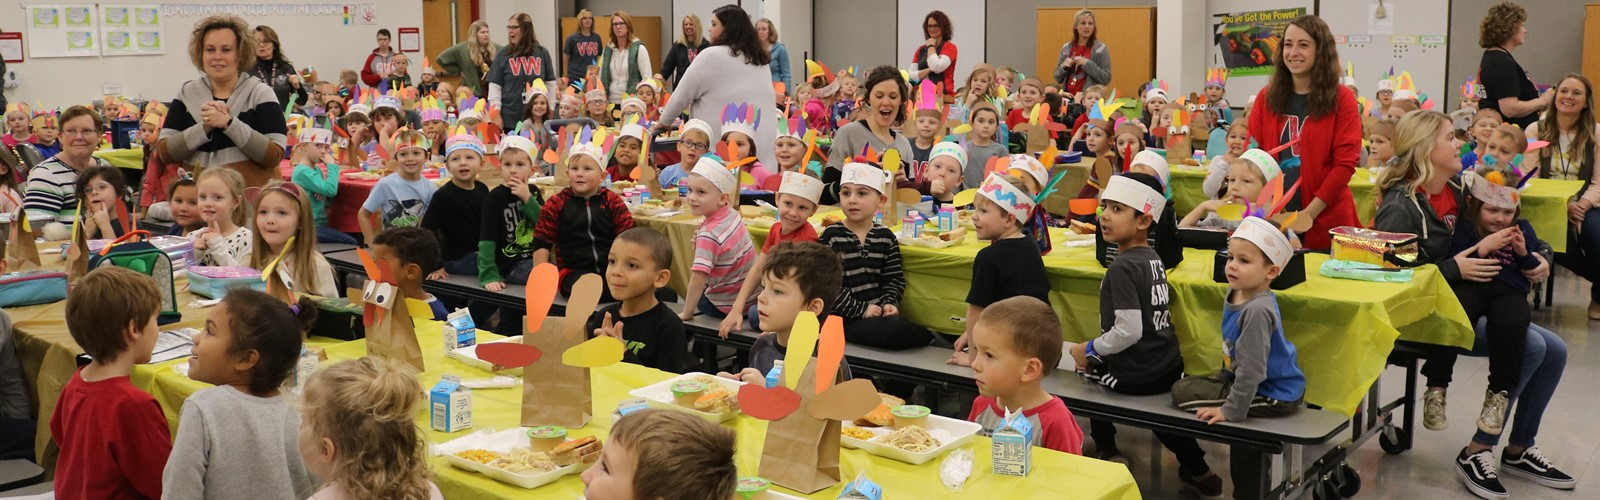 Preschool and Kindergarten students share lunch together for their Thanksgiving feast